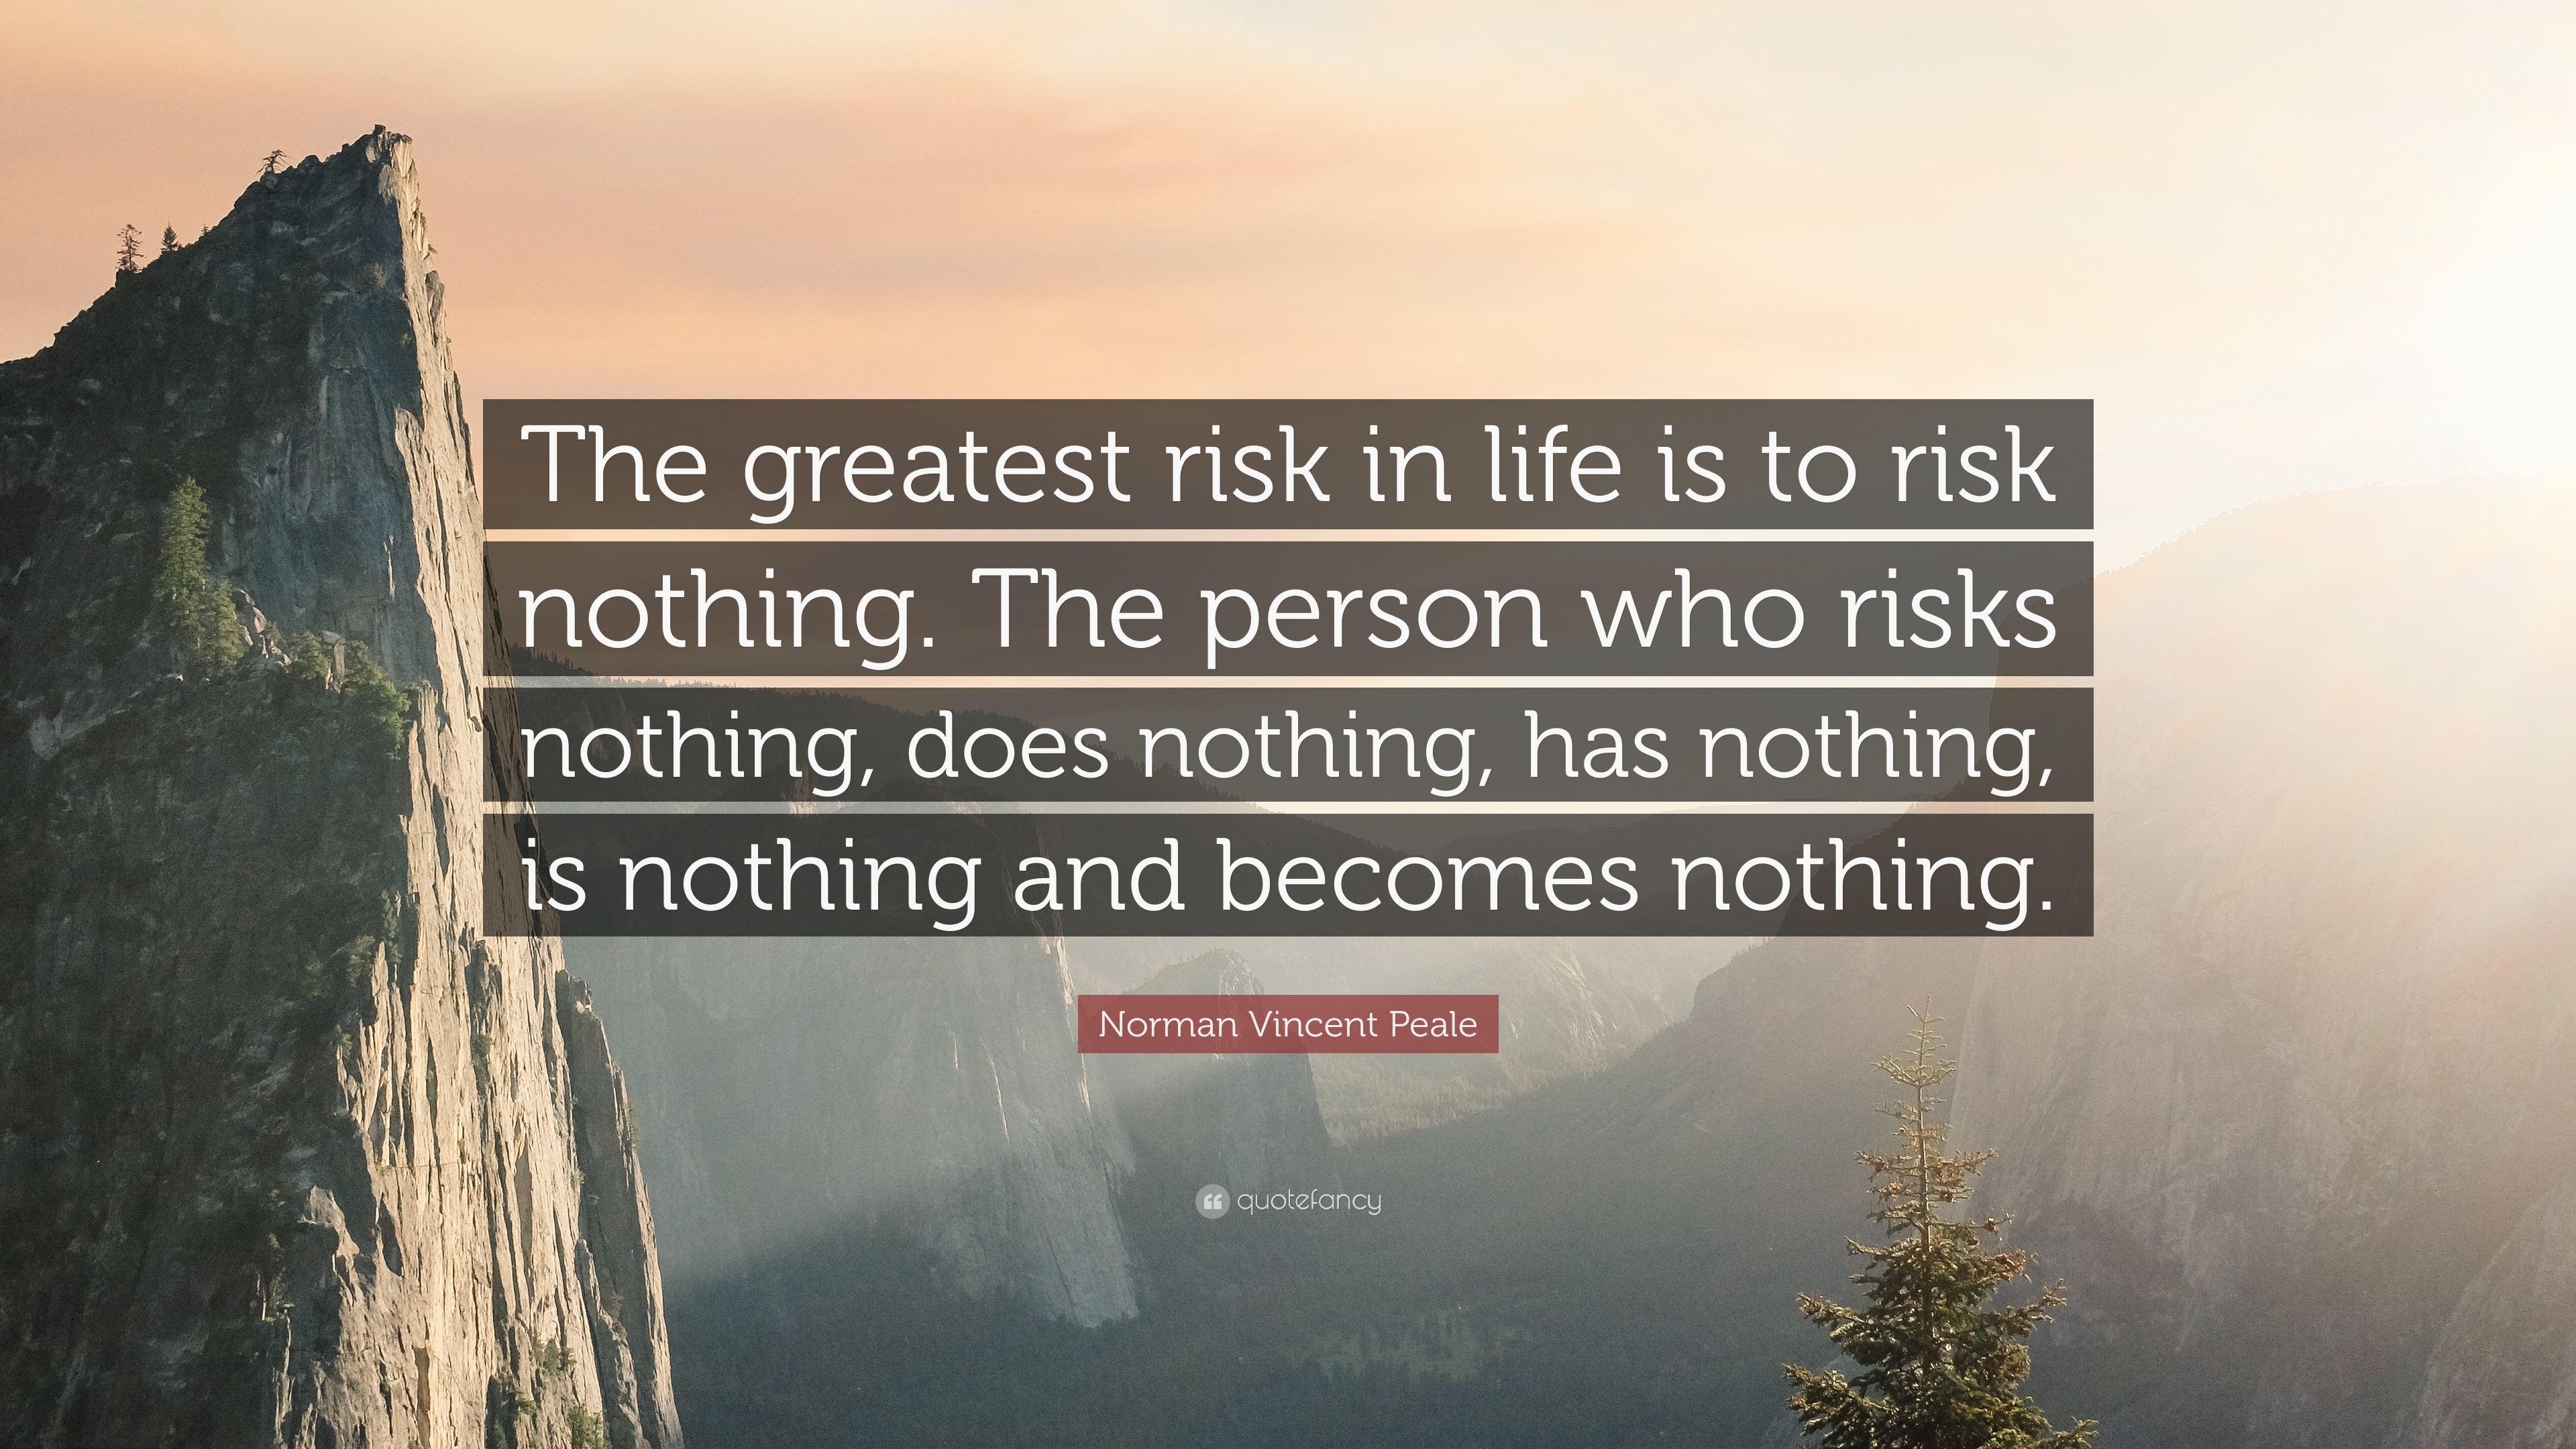 the greatest risk in my life But risk must be taken because the greatest hazard in my life is to risk nothing i had risked nothing for most of my life, because the risks i took were unnecessary and meaningless what is the biggest risk you have ever taken.